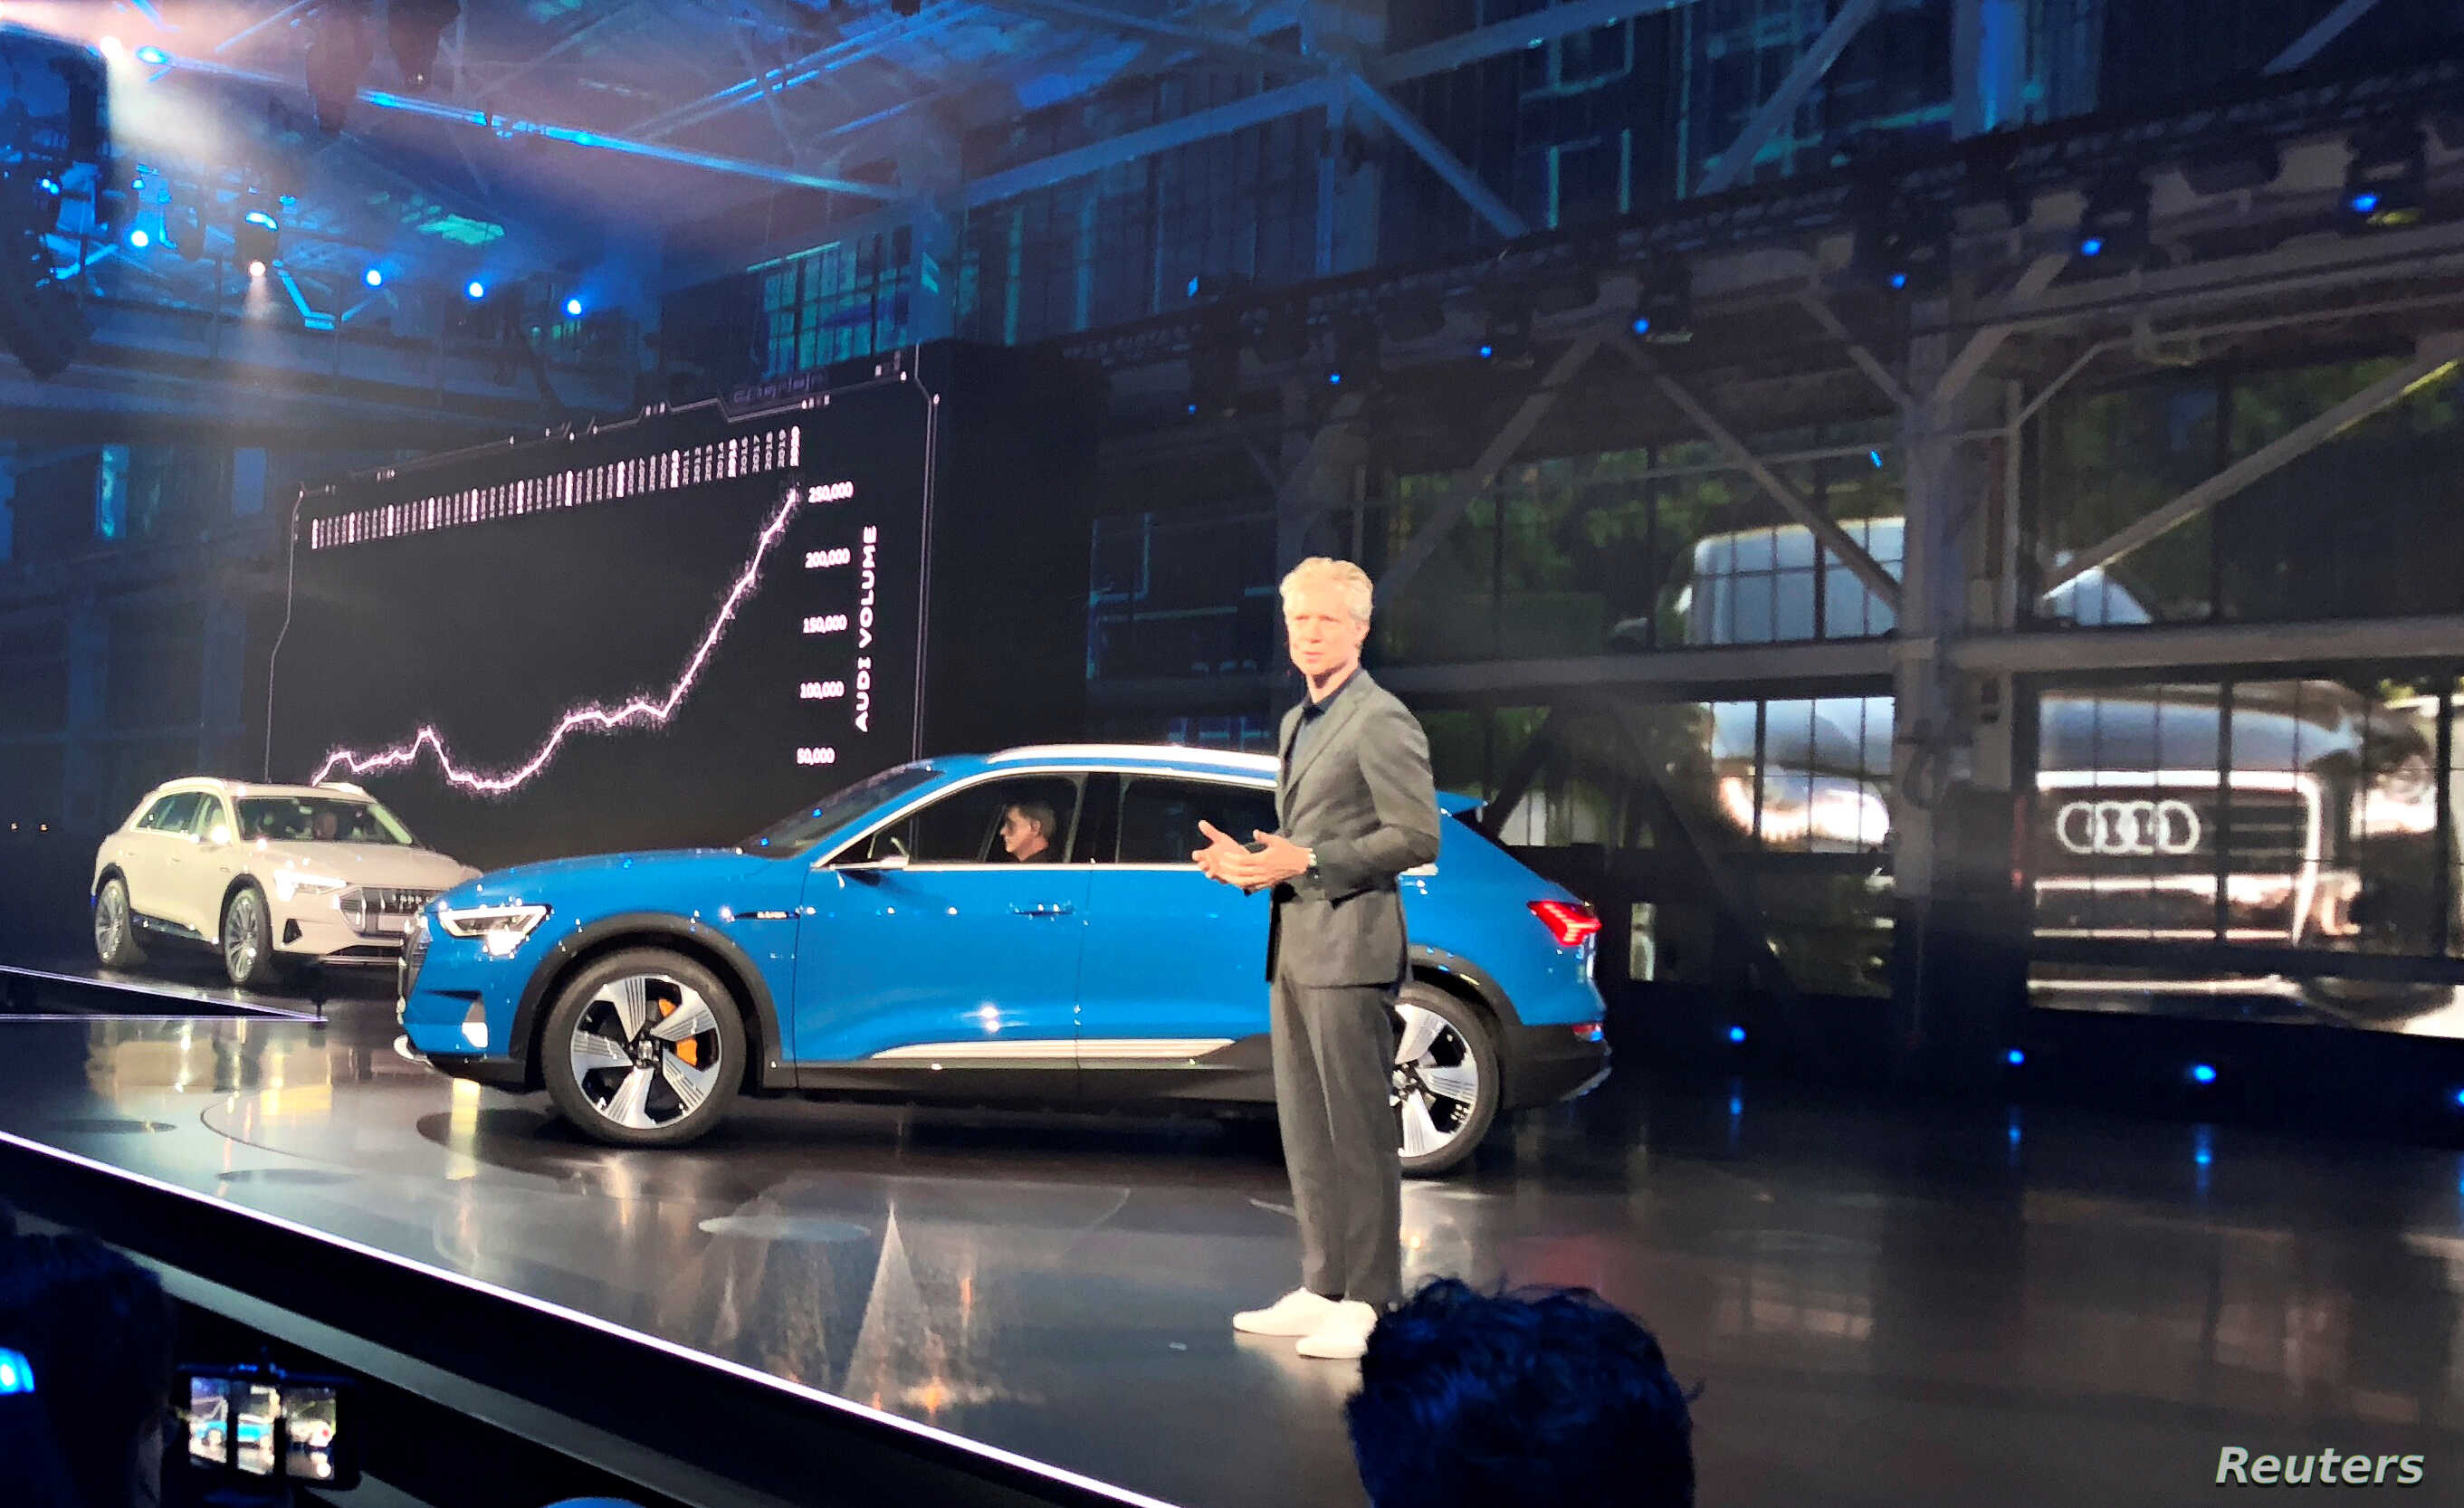 Audi of America President Scott Keogh introduces the German luxury brand's first all-electric production vehicle, the e-tron sport utility vehicle, at an event in Richmond, Calif., Sept. 17, 2018.